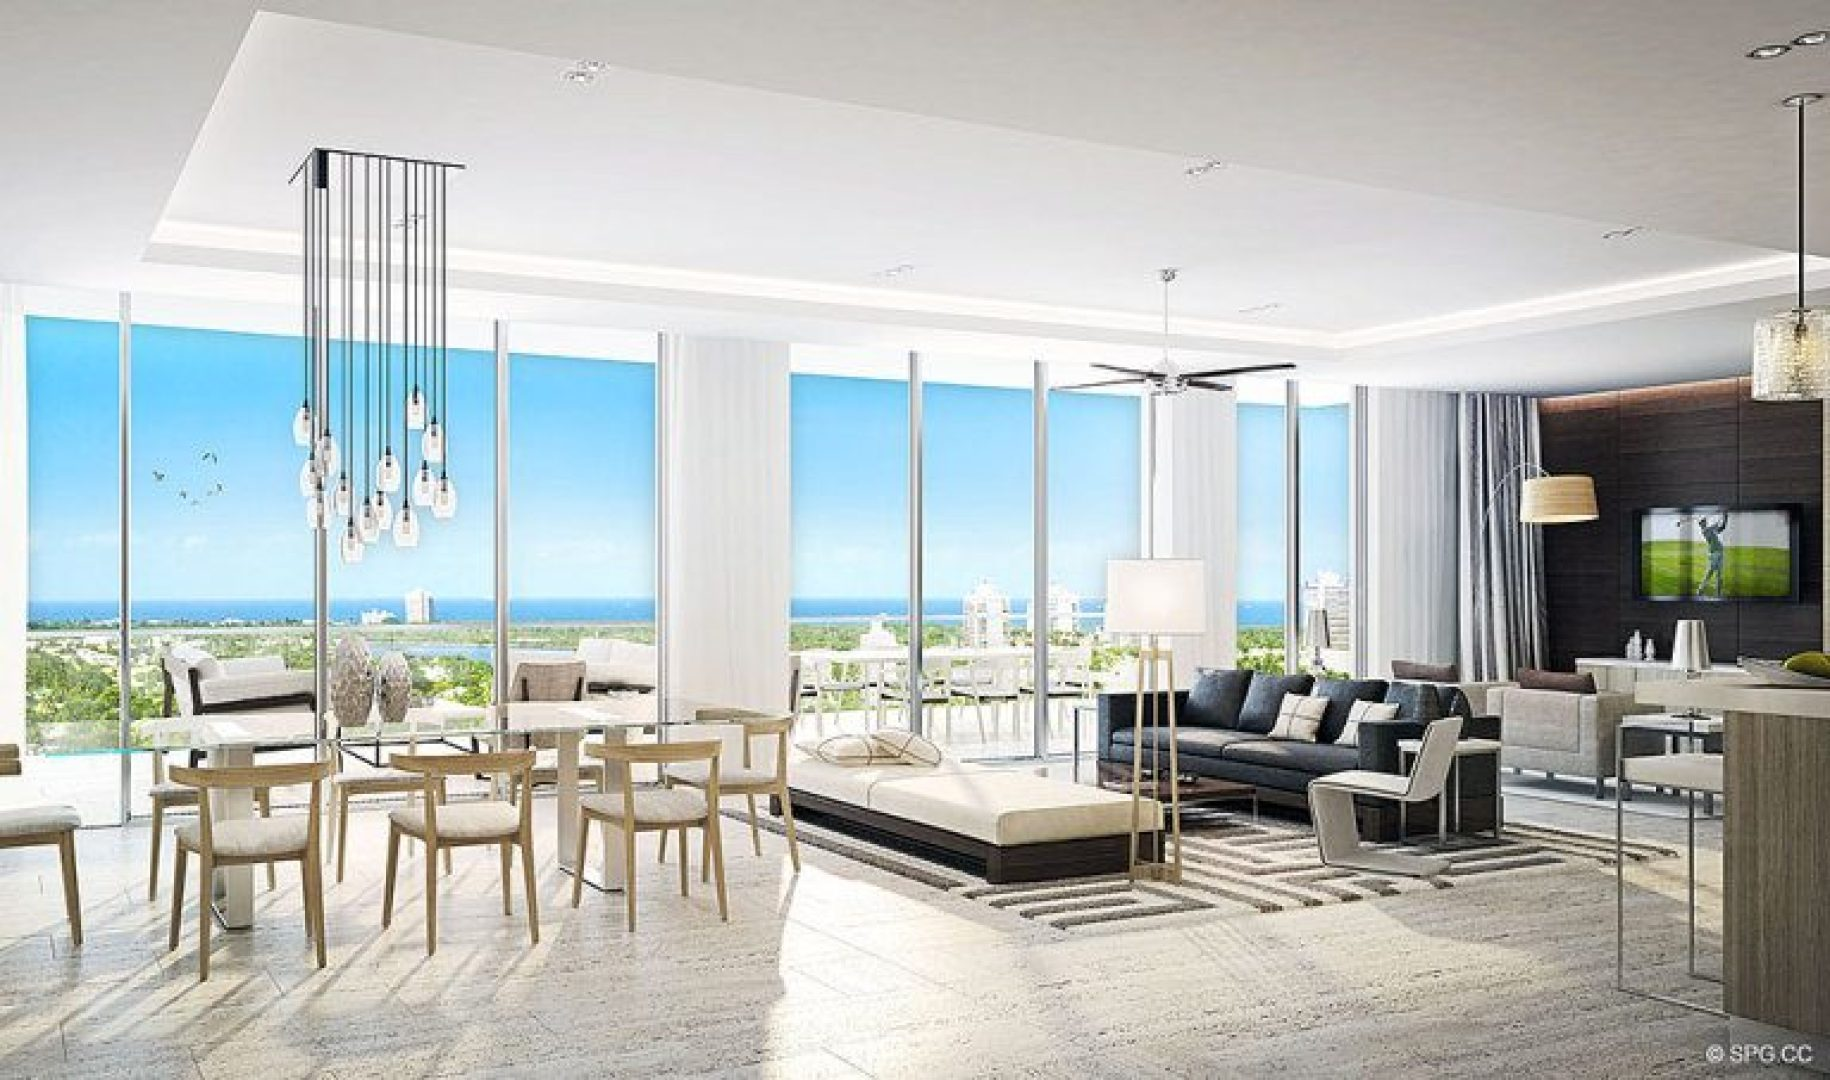 Open Great Room Concept for Riva, Luxury Waterfront Condos in Fort Lauderdale, Florida 33304.